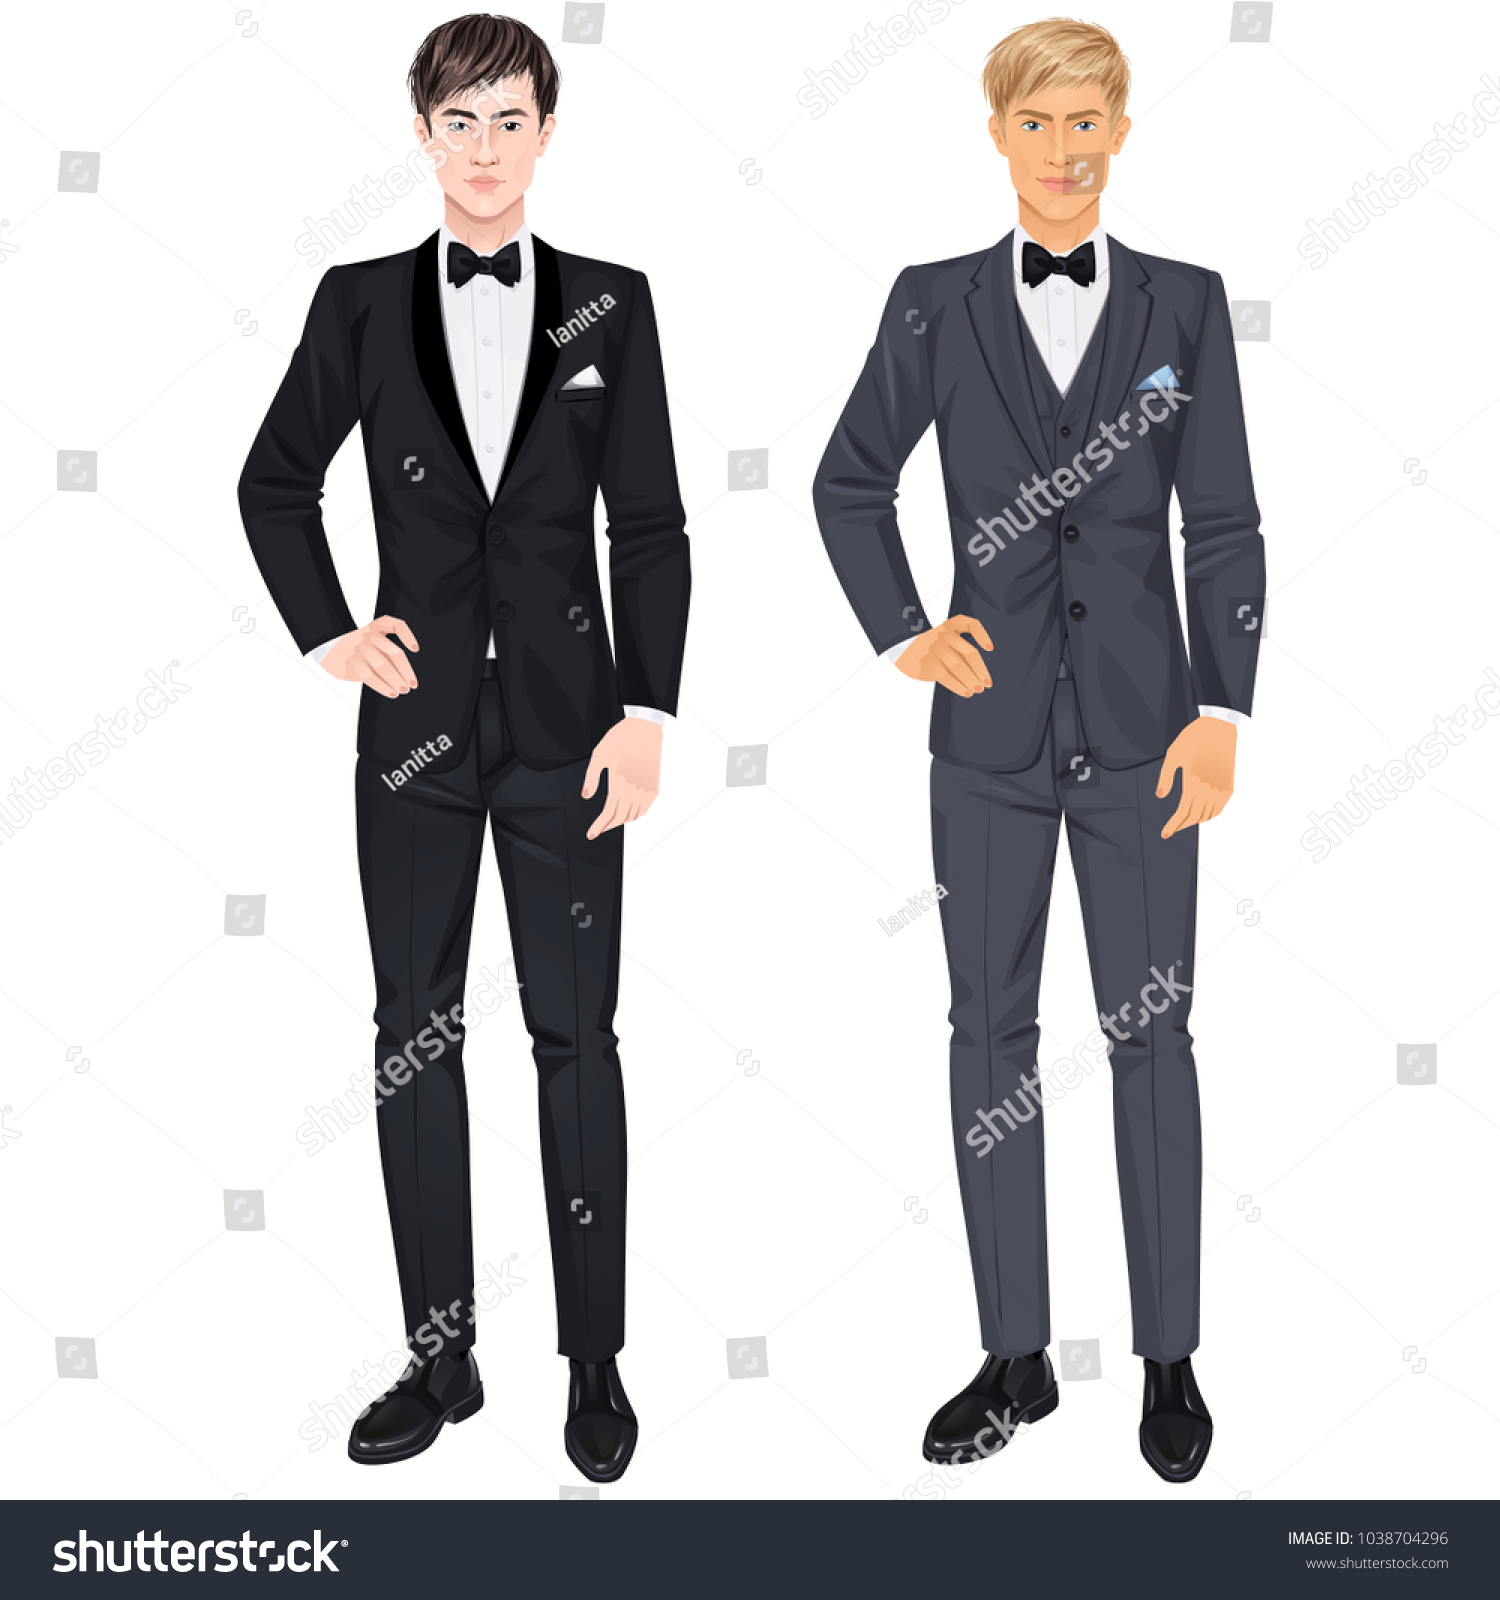 Two Handsome Guys Suits Prom Wedding Stock Photo (Photo, Vector ...